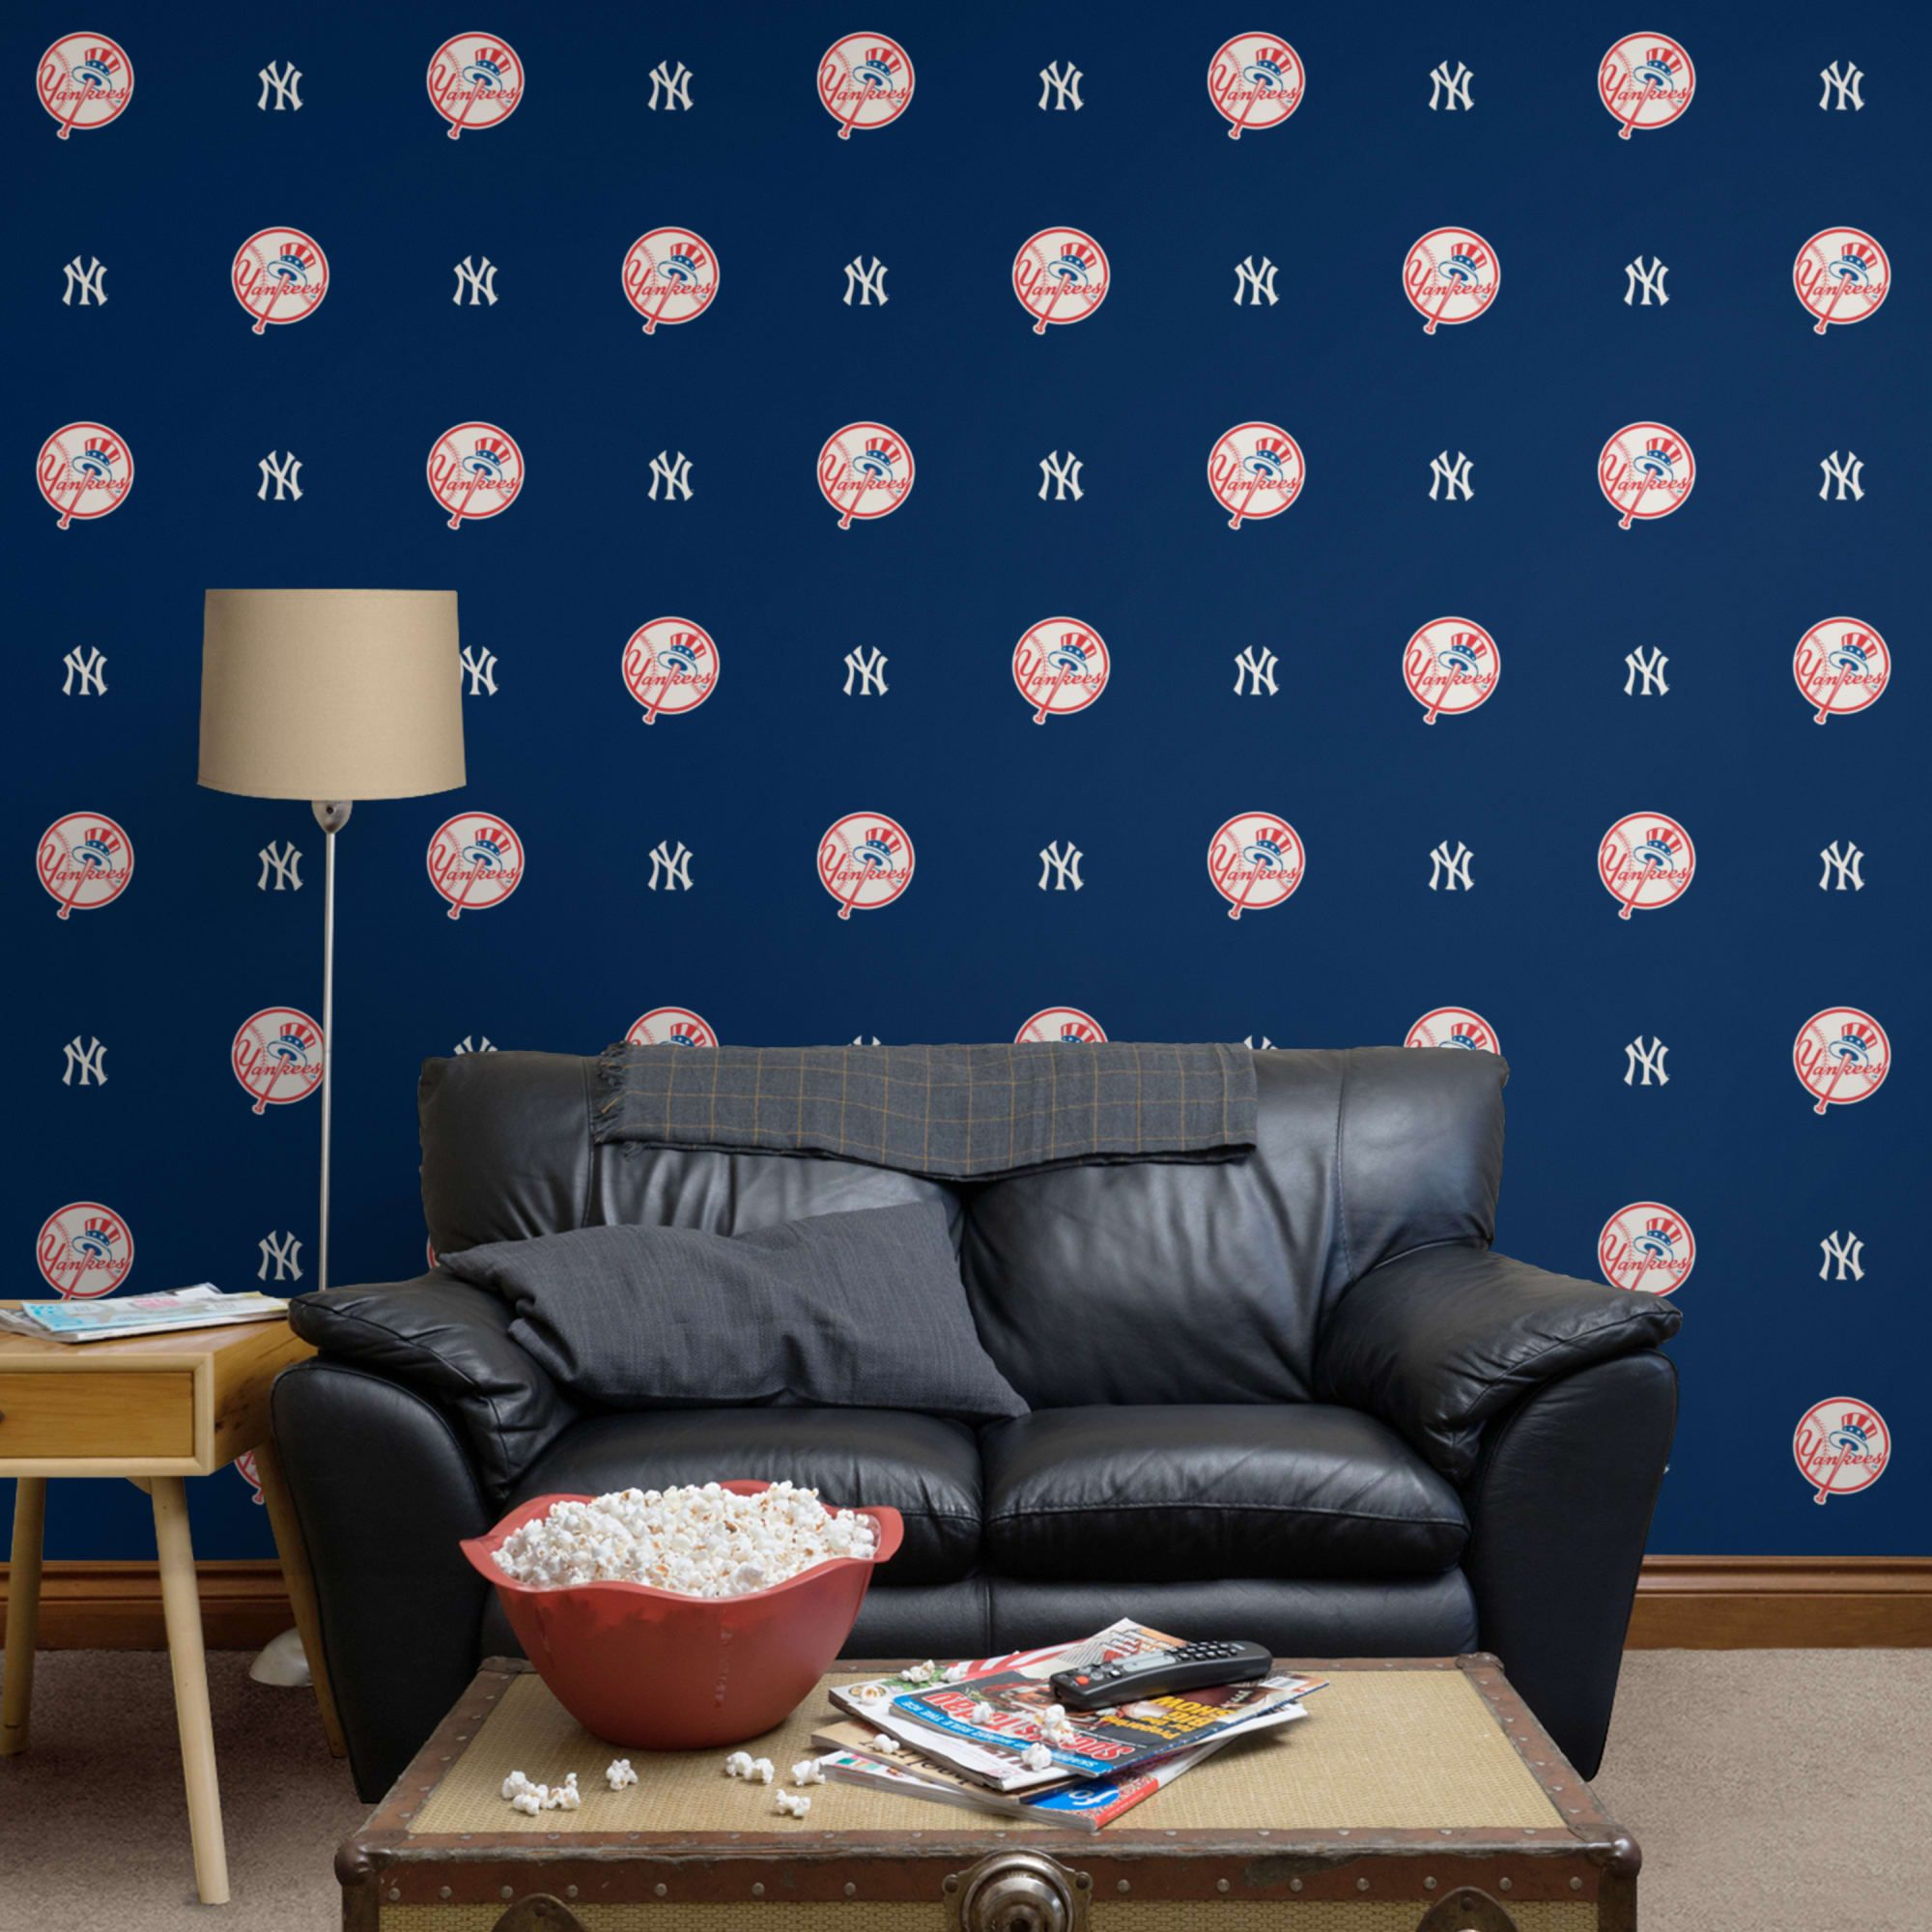 New York Yankees Logo Pattern Blue Officially Licensed Removable Wallpaper New York Yankees Home Decor Wallpaper